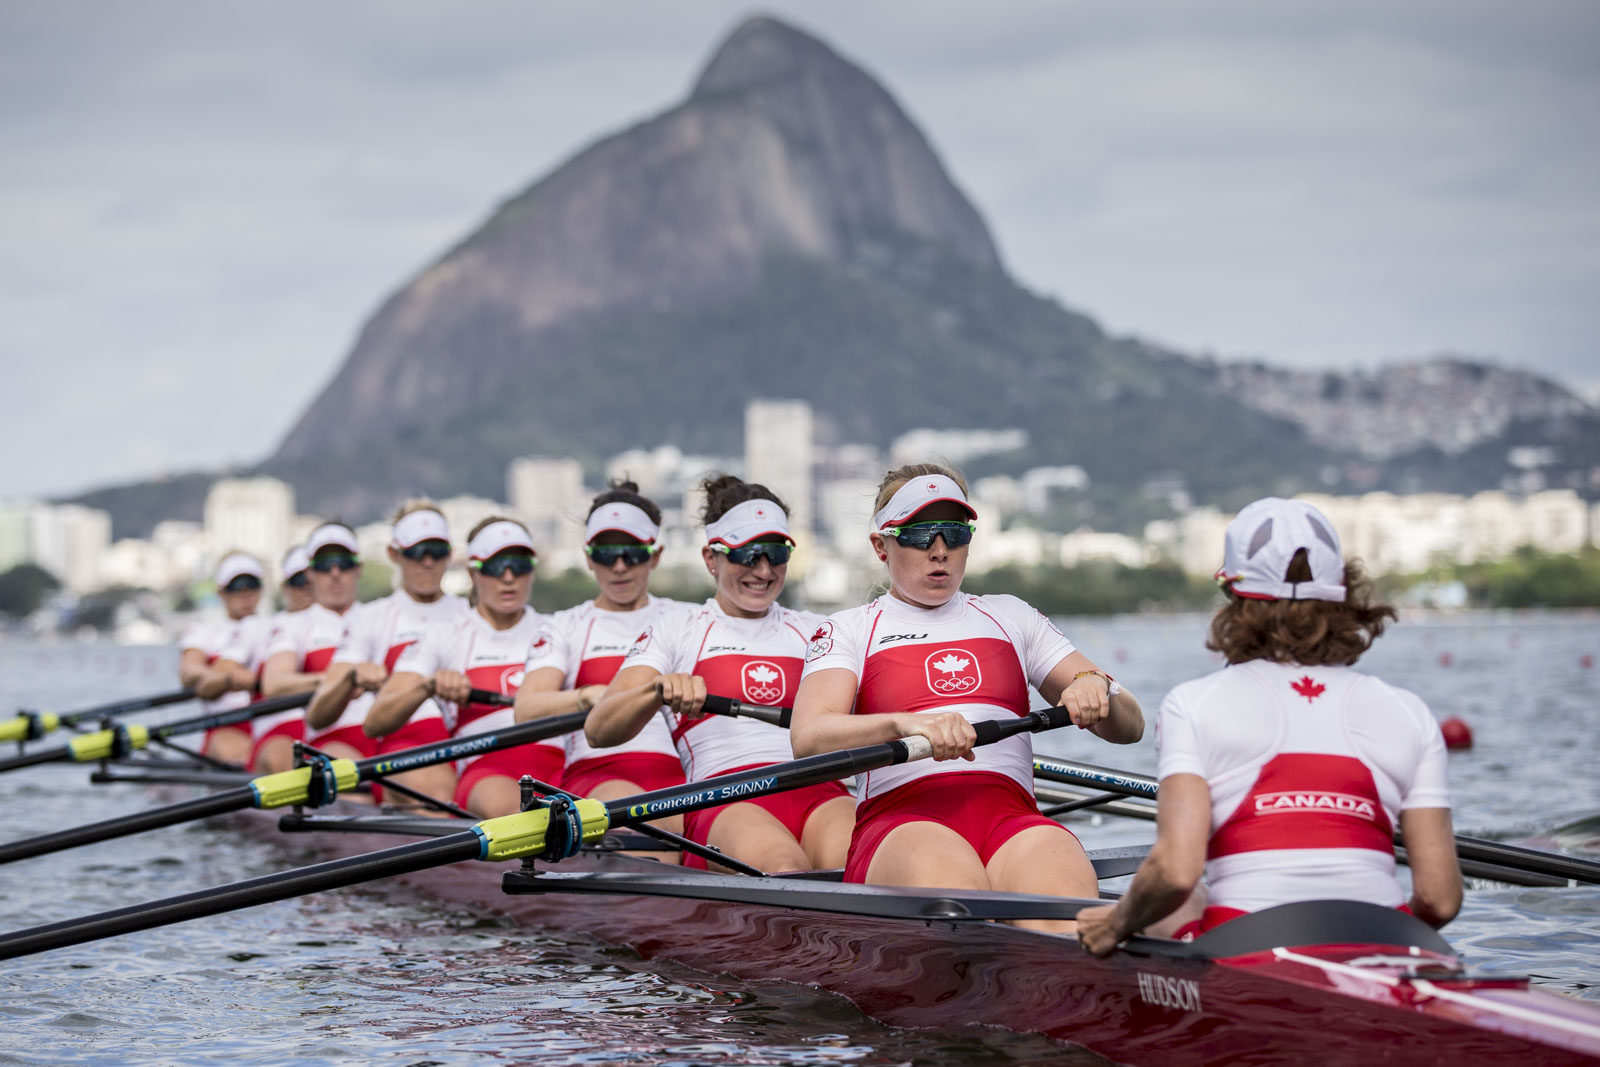 Team Canada's Cristy Nurse, Lisa Roman, Ante von Seydlitz, Christine Roper, Lauren Wilkinson, Susanne Grainger, Natalie Mastracci, Caileigh Filmer and Lesley Thompson-Willie in the womens eight repechage at Lagoa Rowing Stadium, Rio de Janeiro, Brazil, Thursday August 11, 2016.    COC Photo/David Jackson